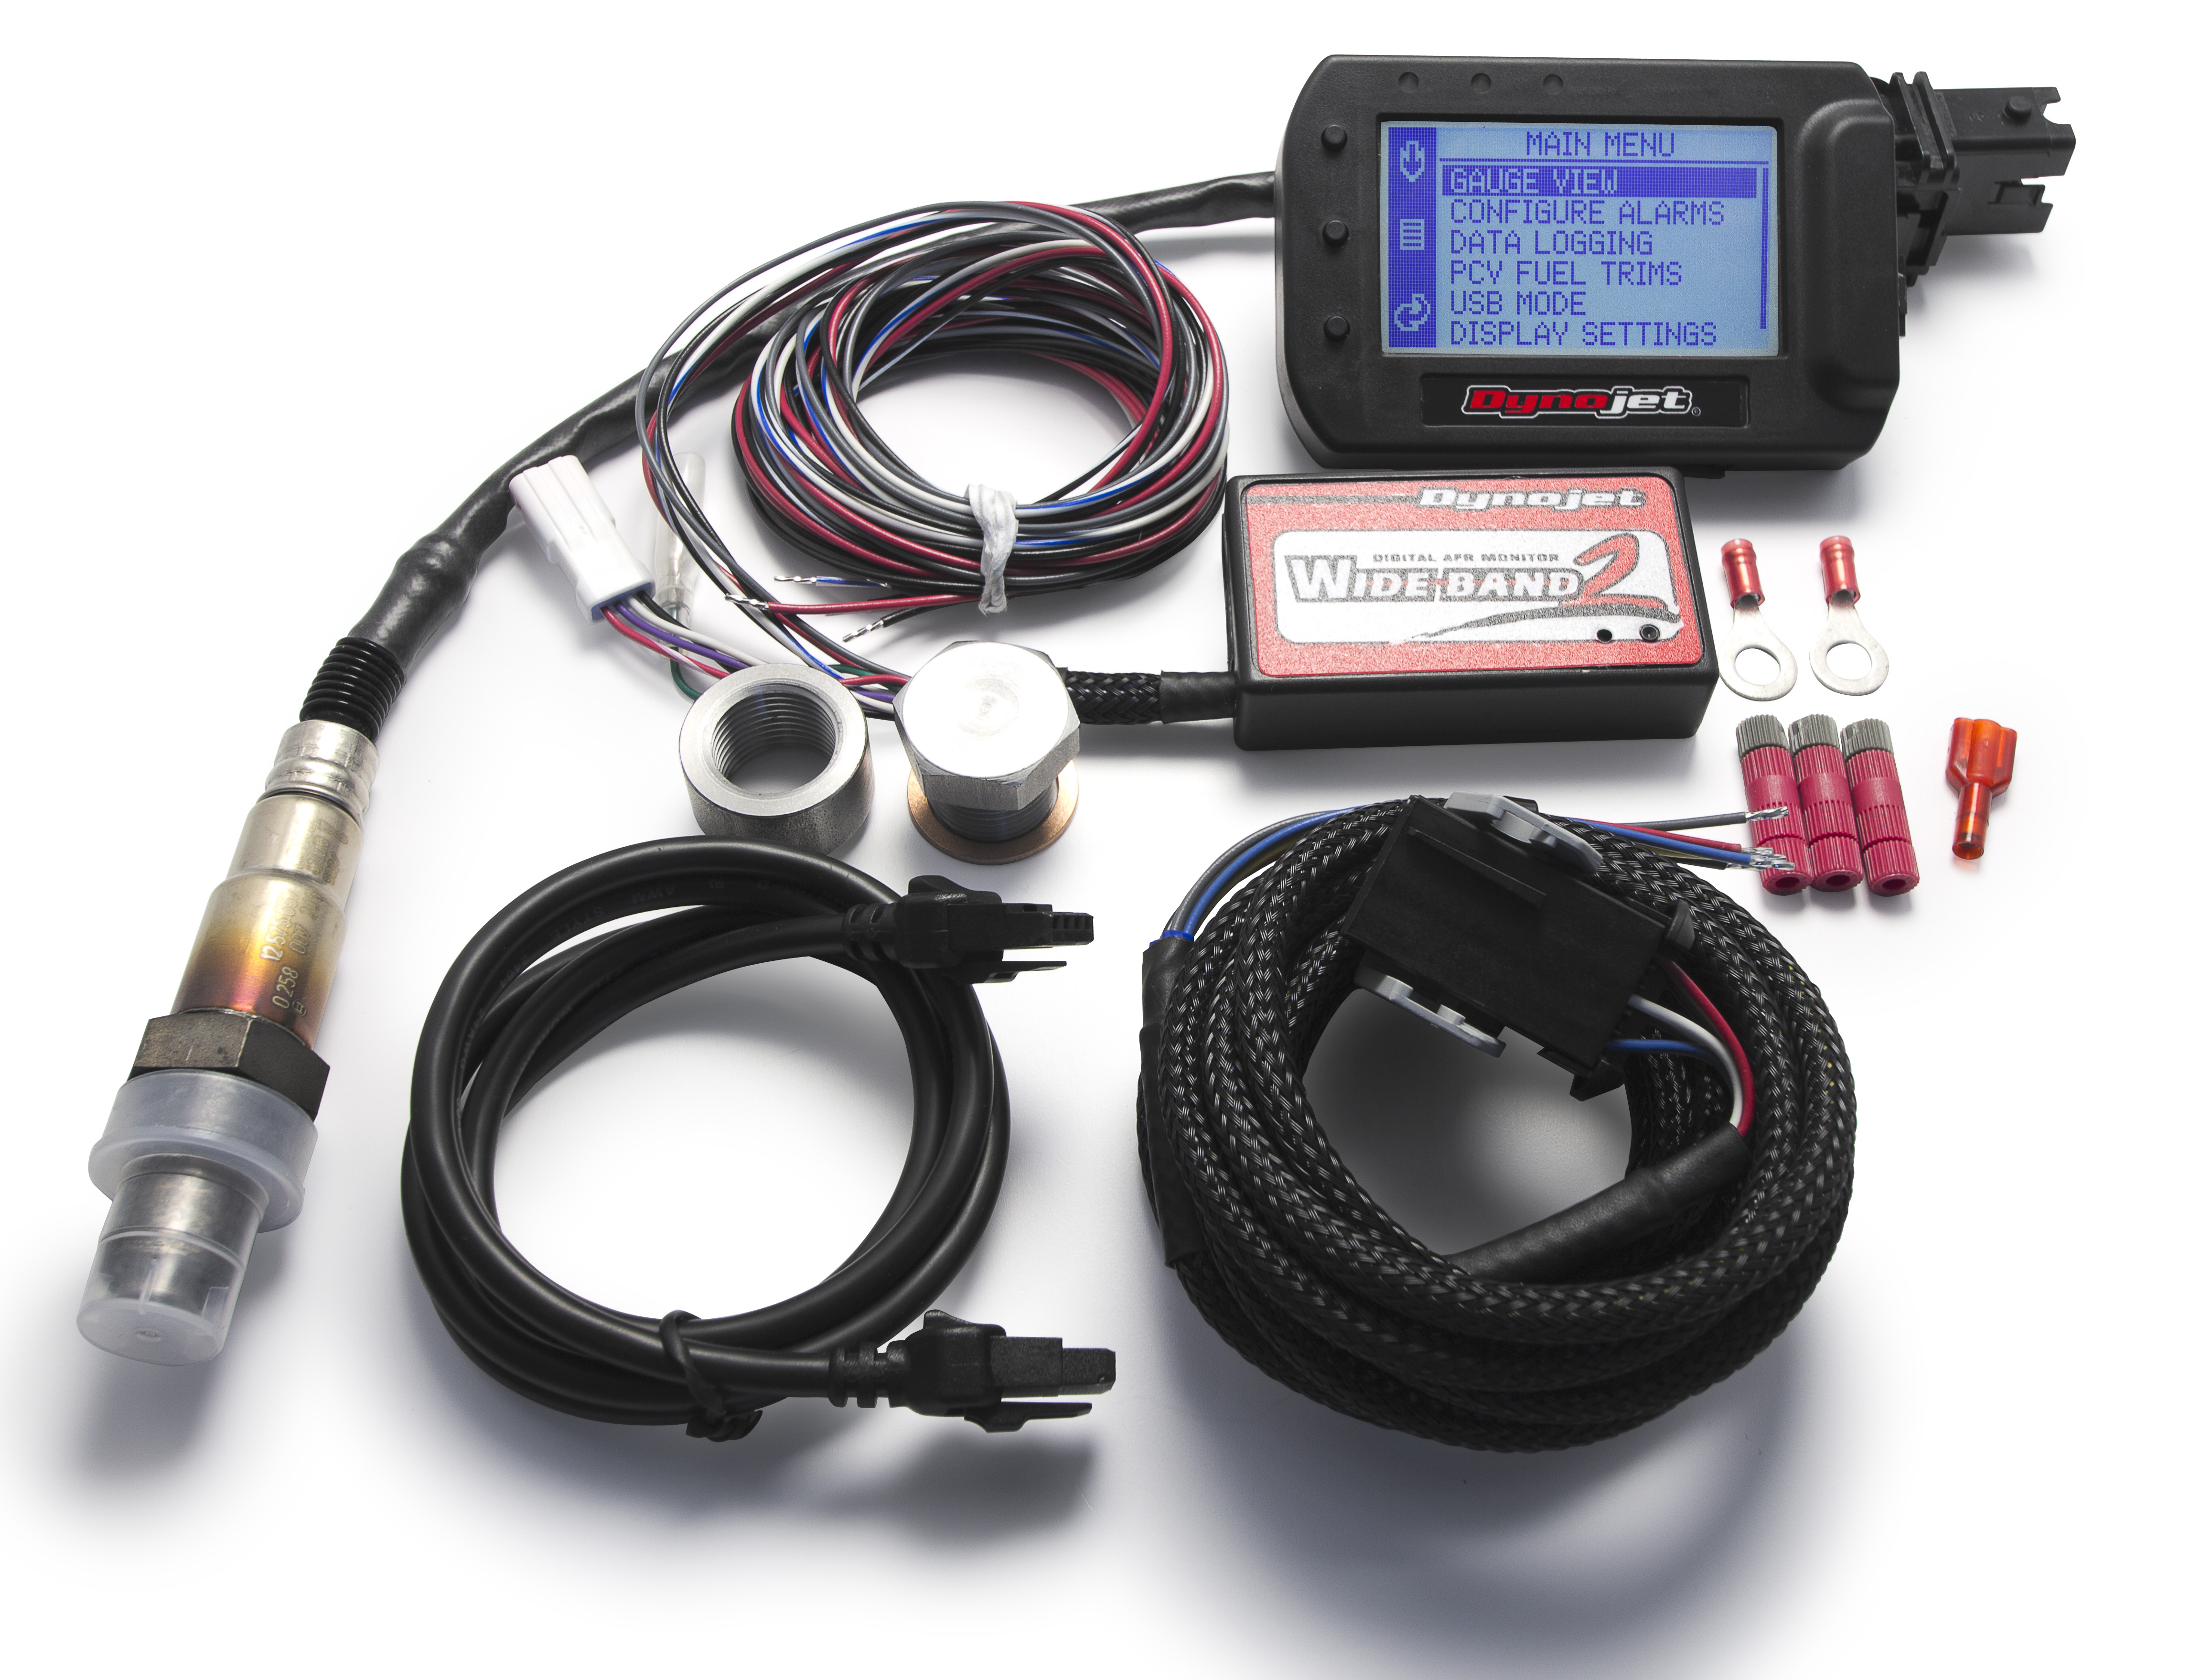 Wideband 2 - Power Commander